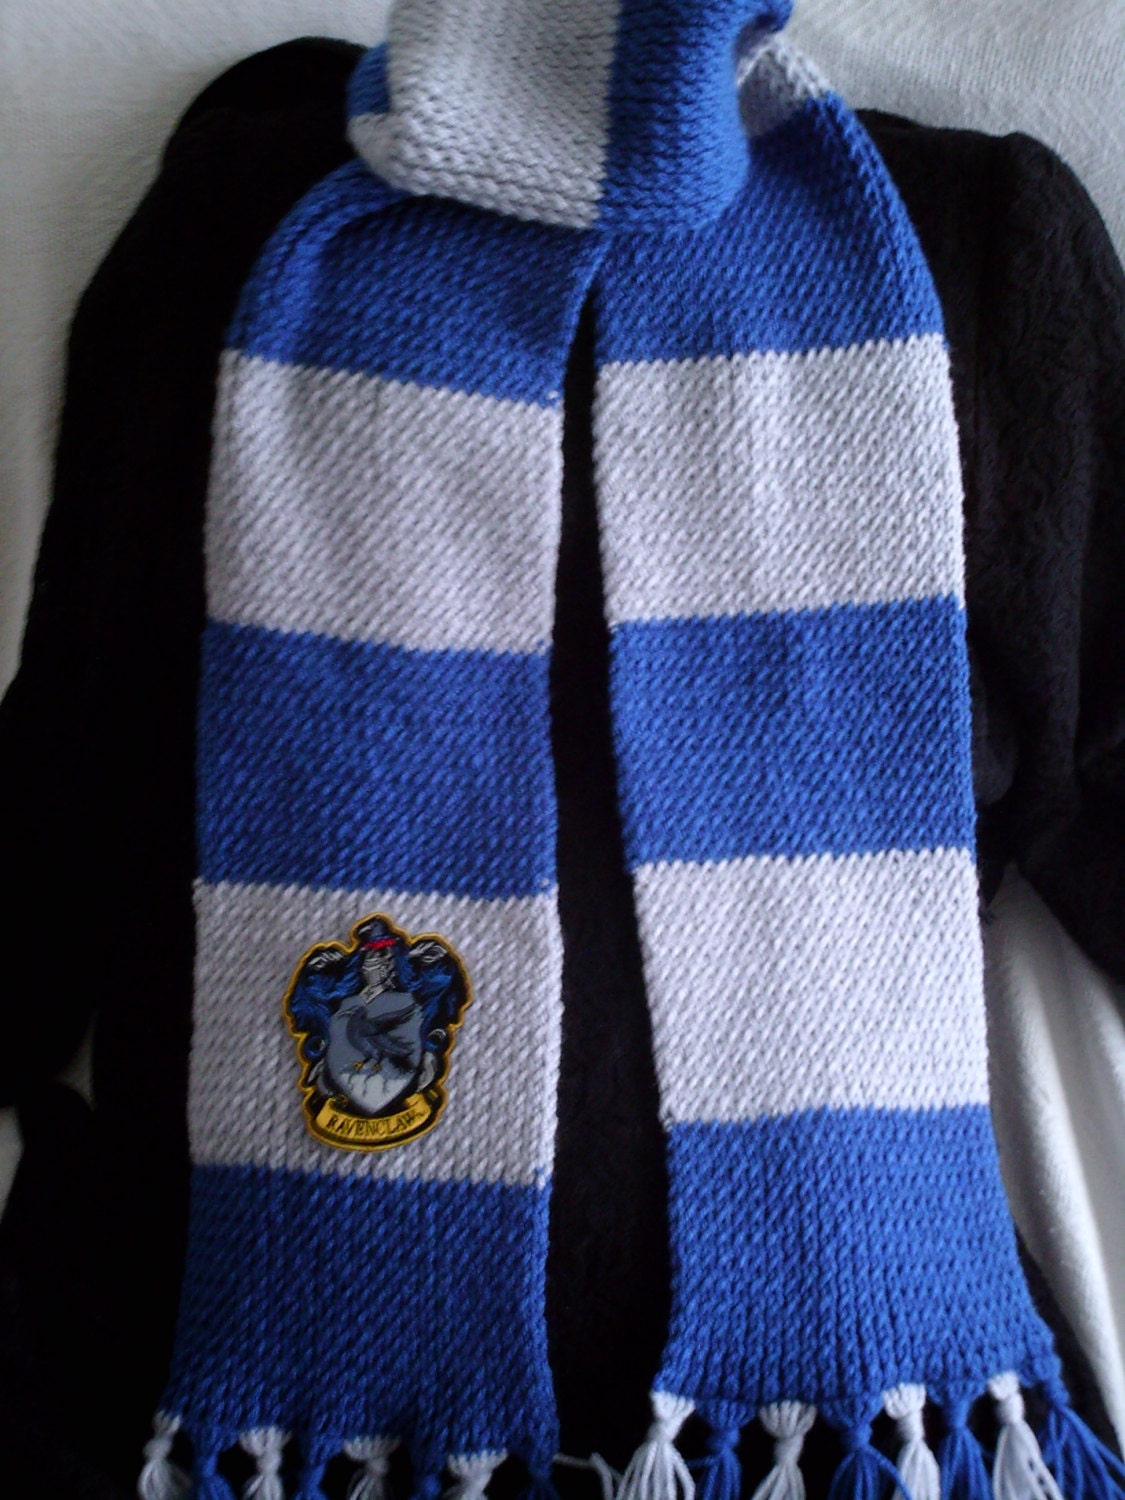 Ravenclaw Scarf Knitting Pattern : Harry Potter Ravenclaw knit scarf with crest patch by AinsDesign